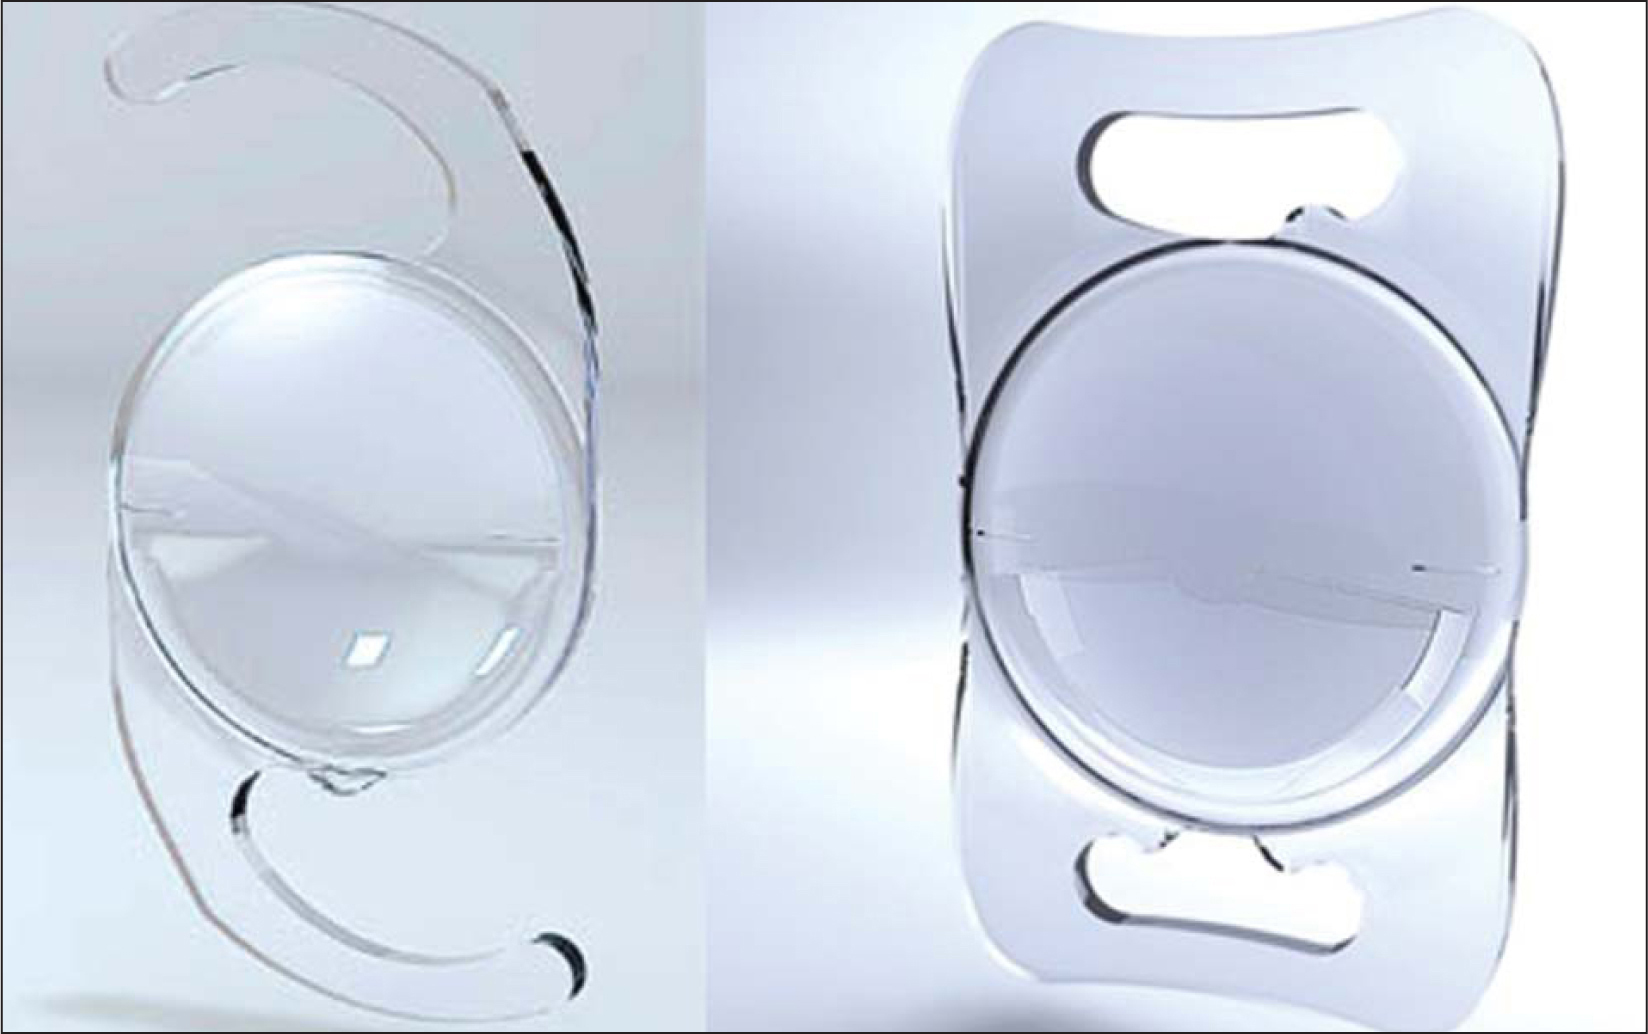 A general view of the Lentis Mplus LS-312 multifocal intraocular lens (left) and the Lentis Mplus LS-313 multifocal intraocular lens (right) (Oculentis GmbH, Berlin, Germany).